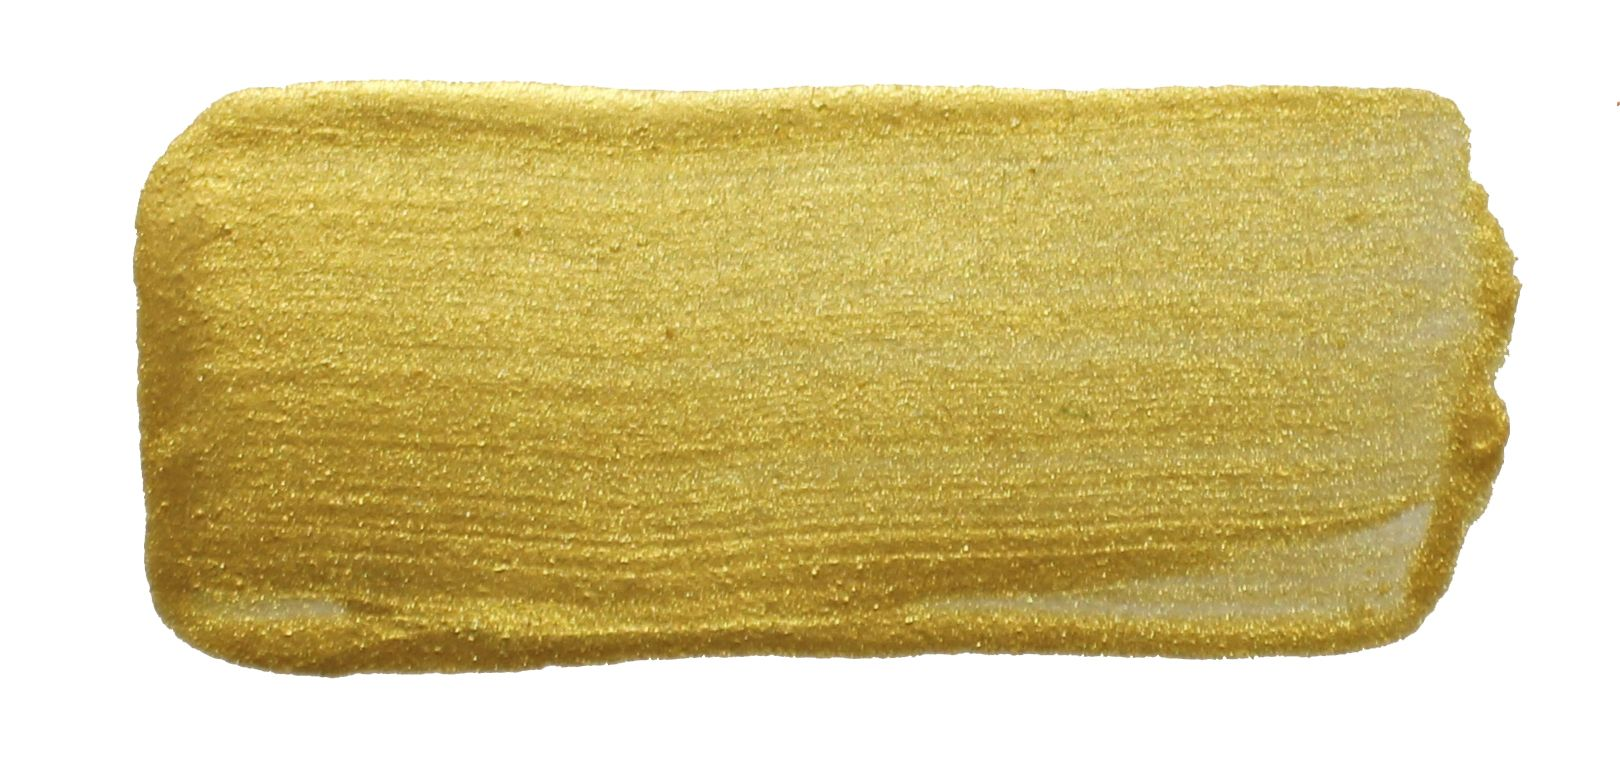 Chroma Molten Metals Dorado Gold Handpainted Color Swatch